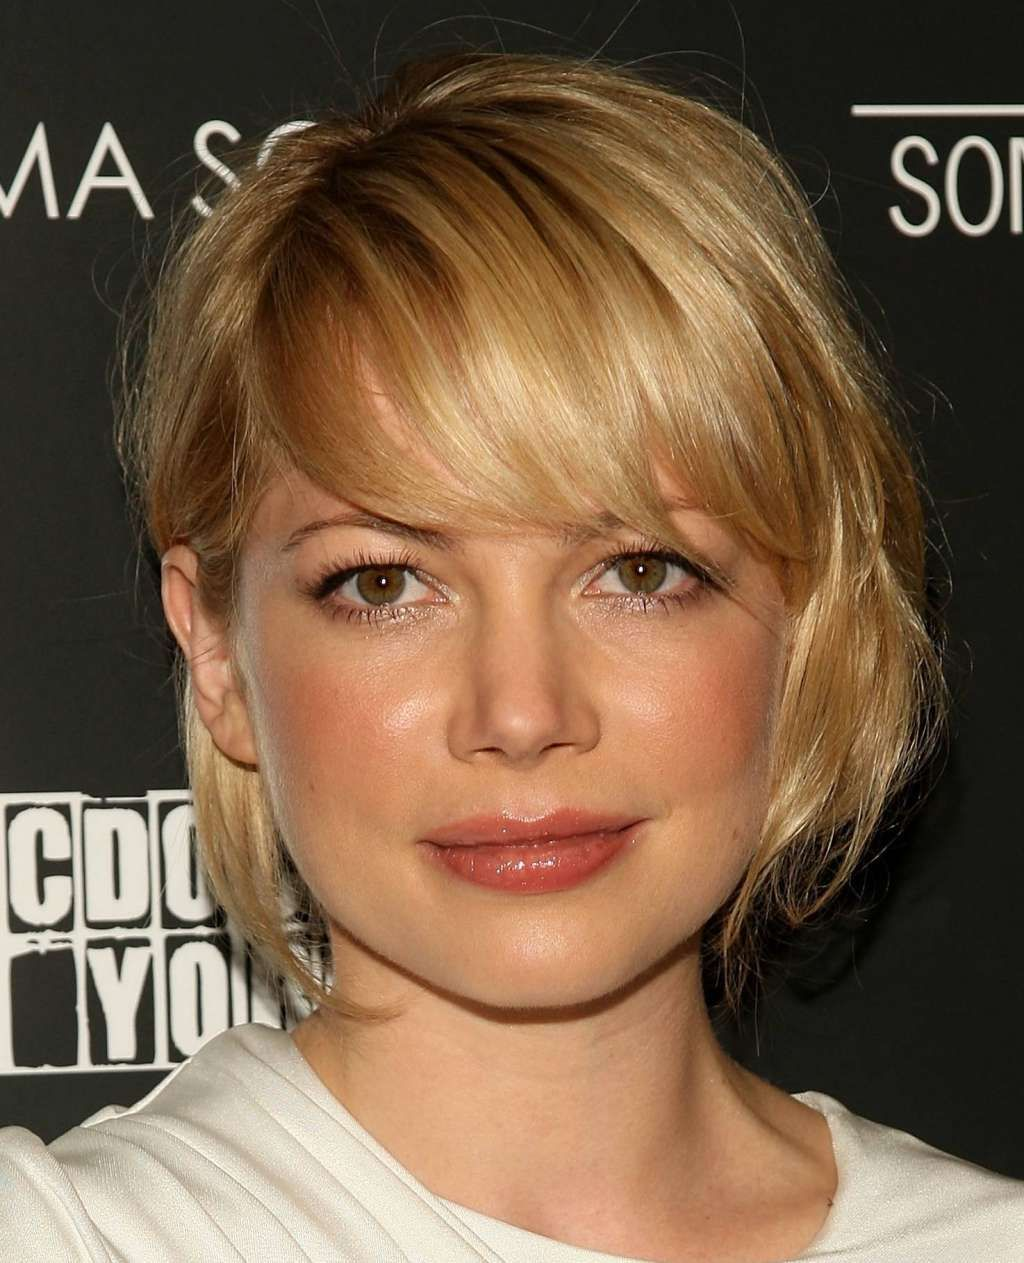 Short bob hairstyle for round face  oneladycom  hair hairs